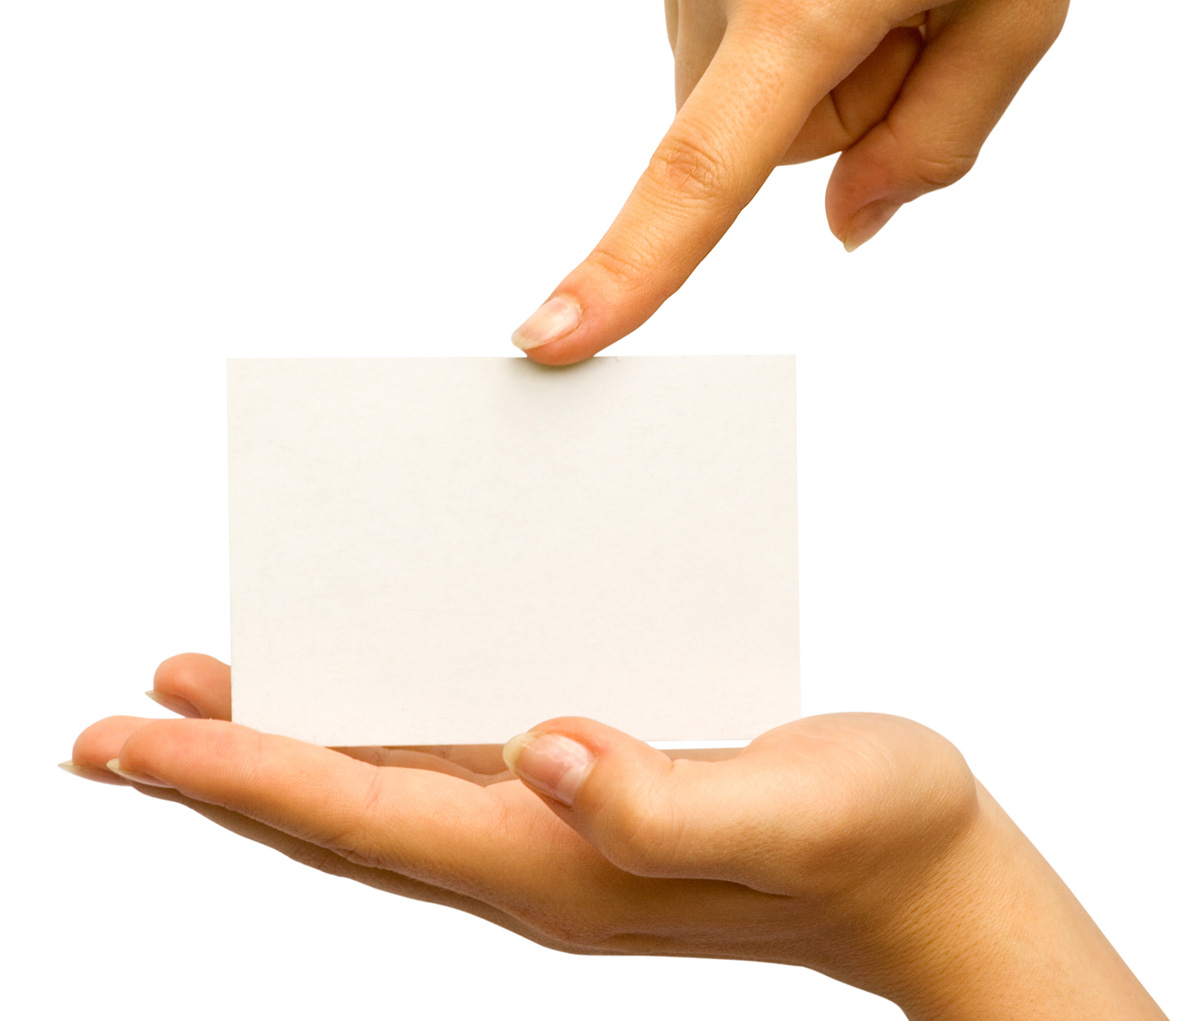 Holding blank card 26095